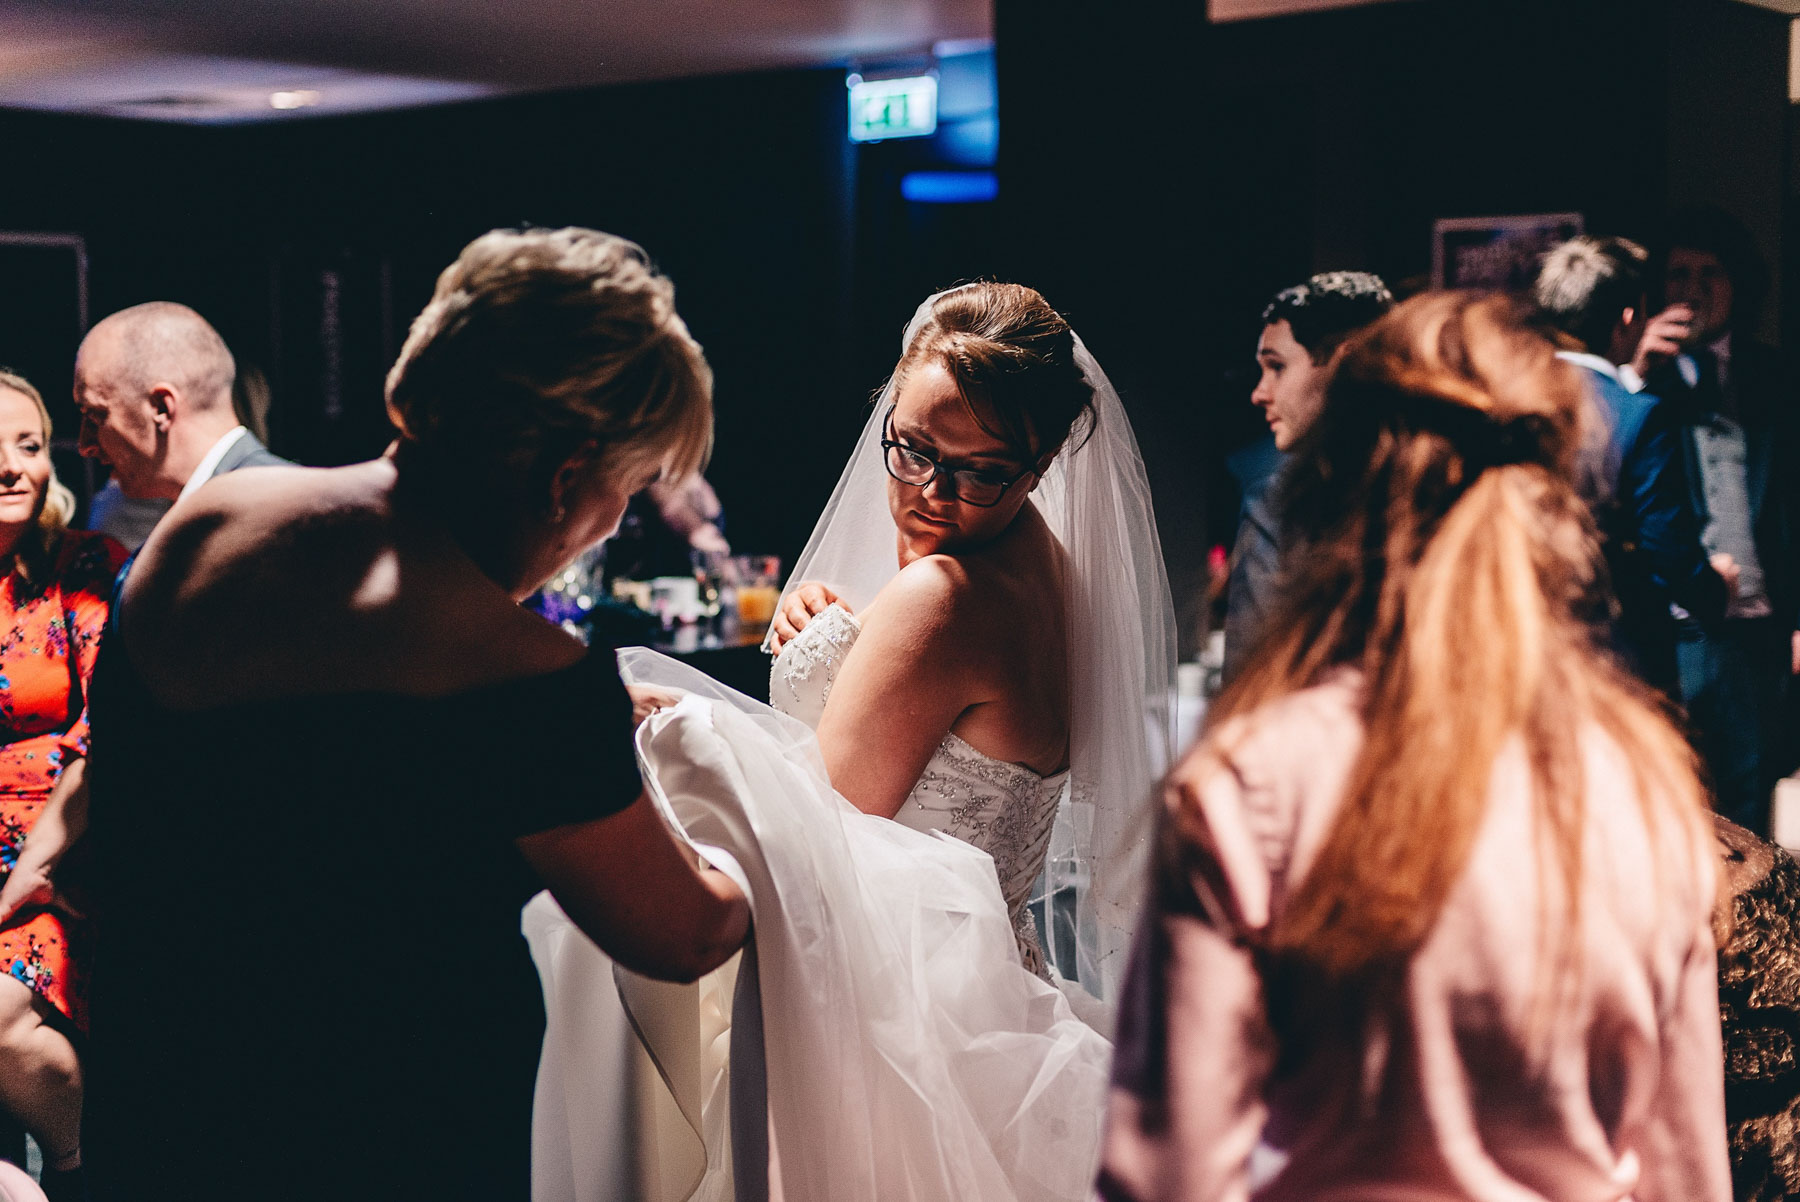 Bride looks down at her dress